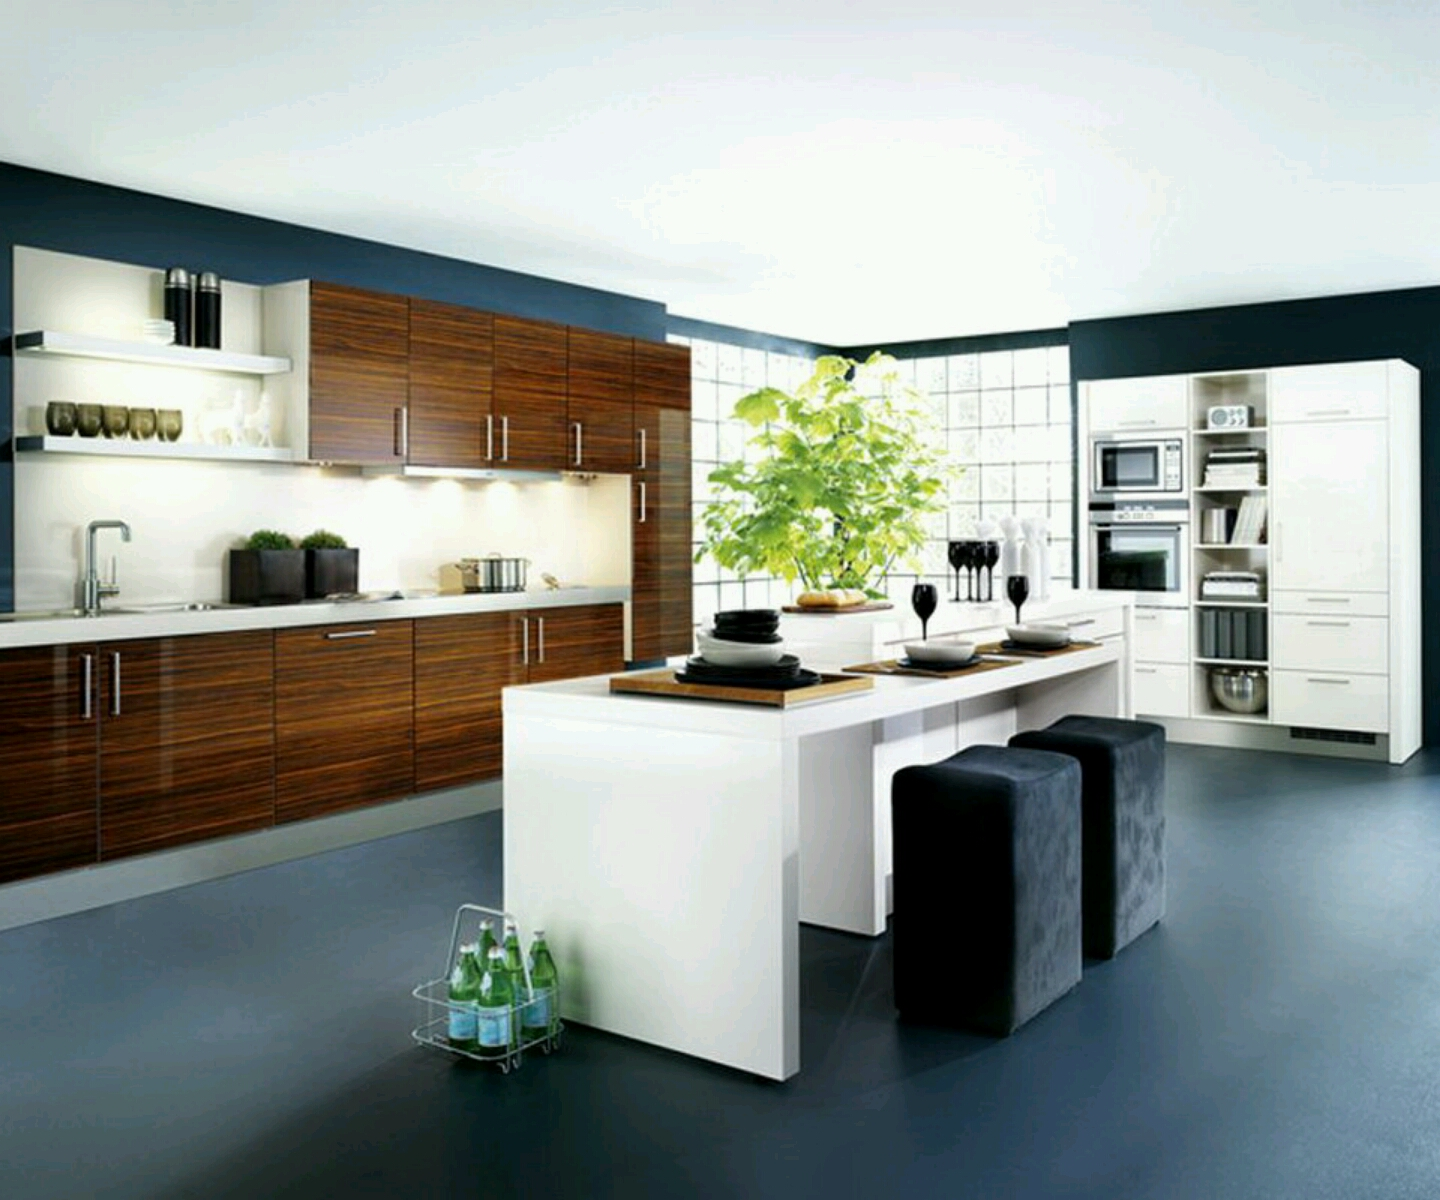 New home designs latest kitchen cabinets designs modern for Modern kitchen gallery